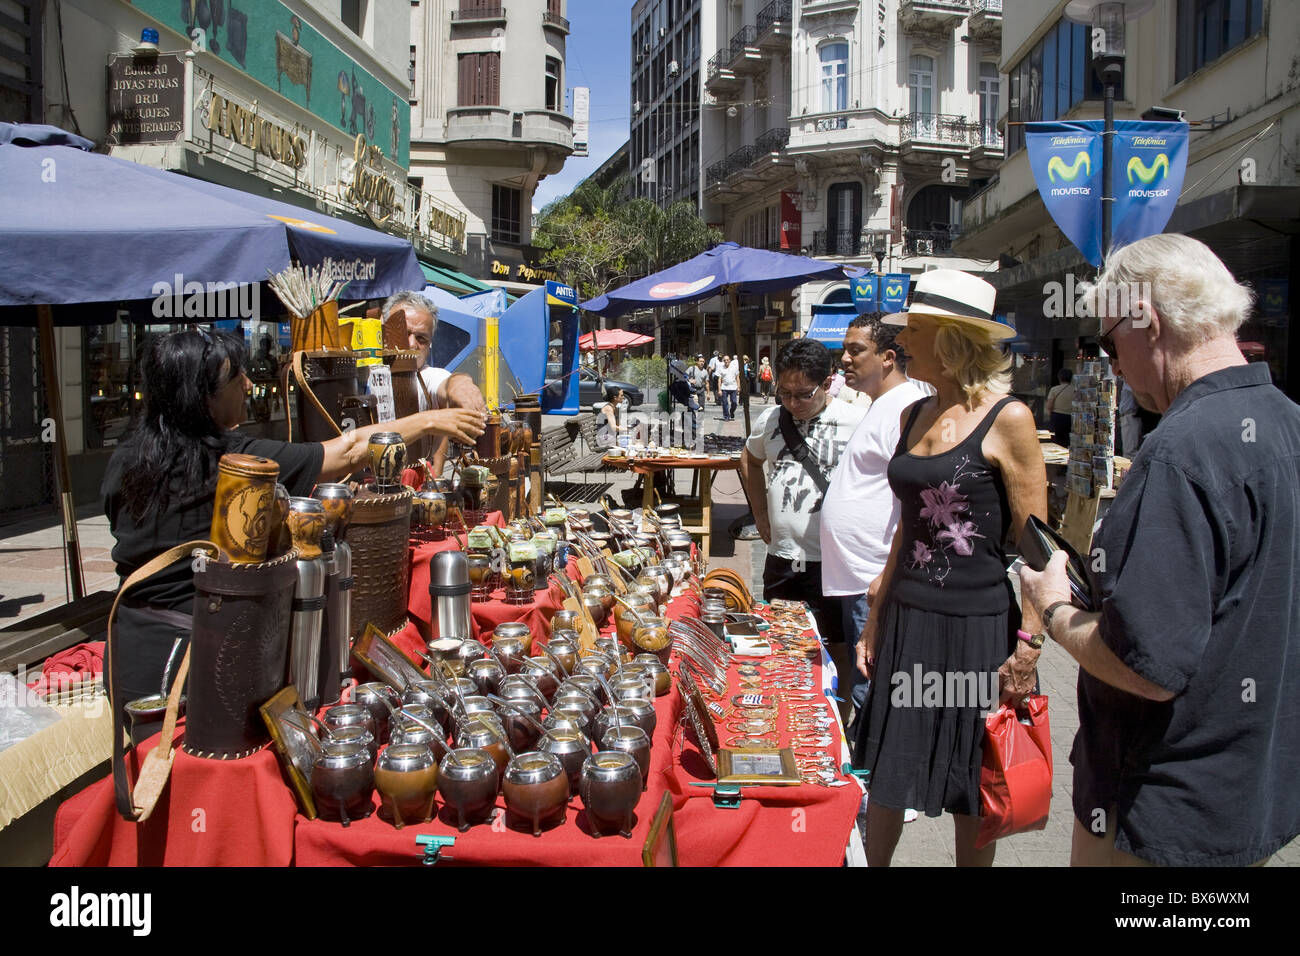 Selling Mate cups on Sarandi Street in the Old City District, Montevideo, Uruguay, South America - Stock Image